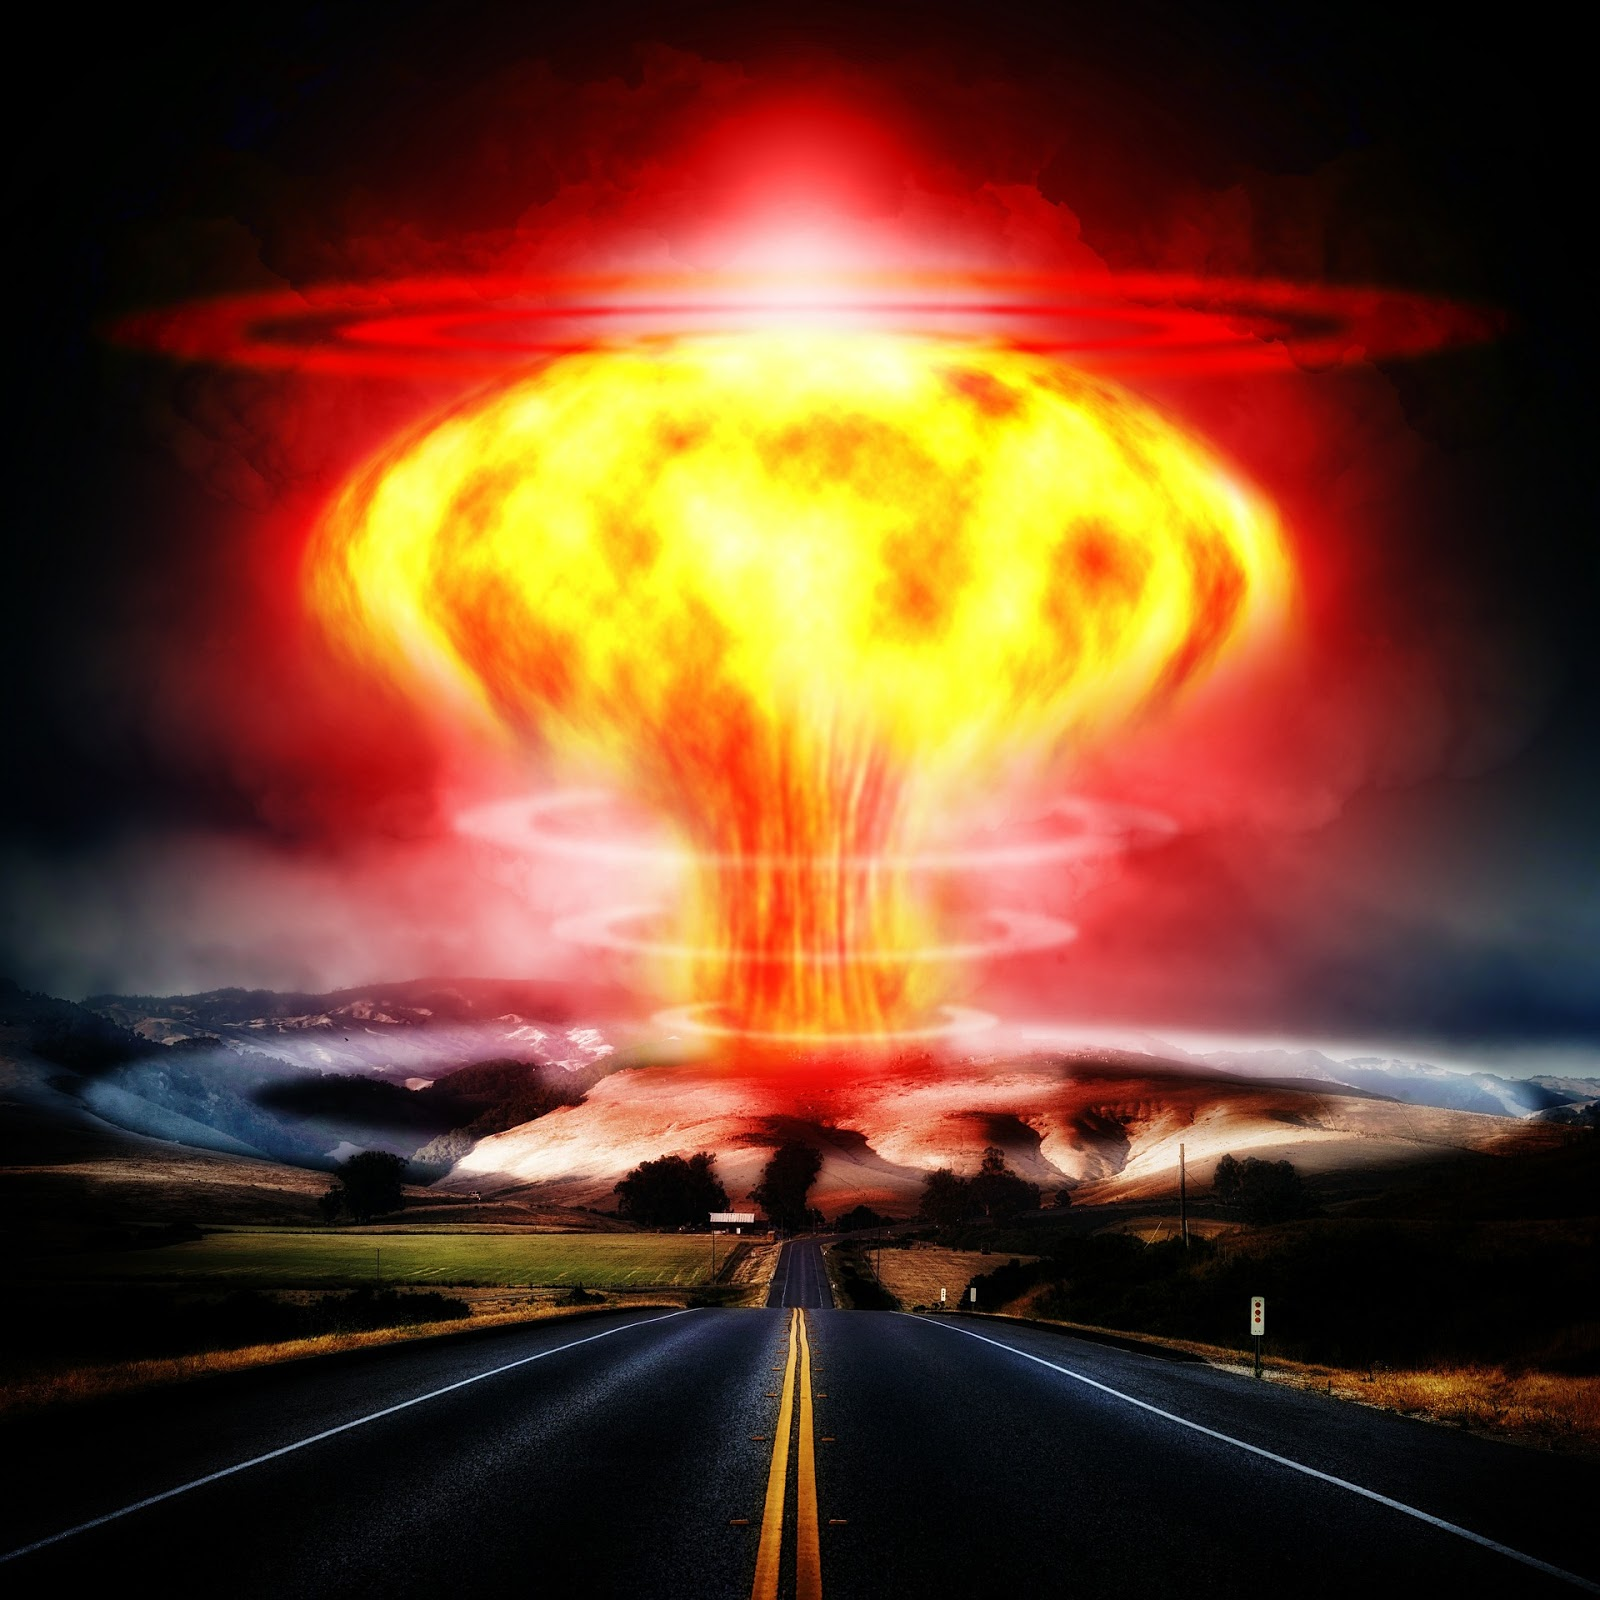 a deserted highway flows into the horizon with a nuclear explosion in the background to illustrate a blog post about bombs and the military